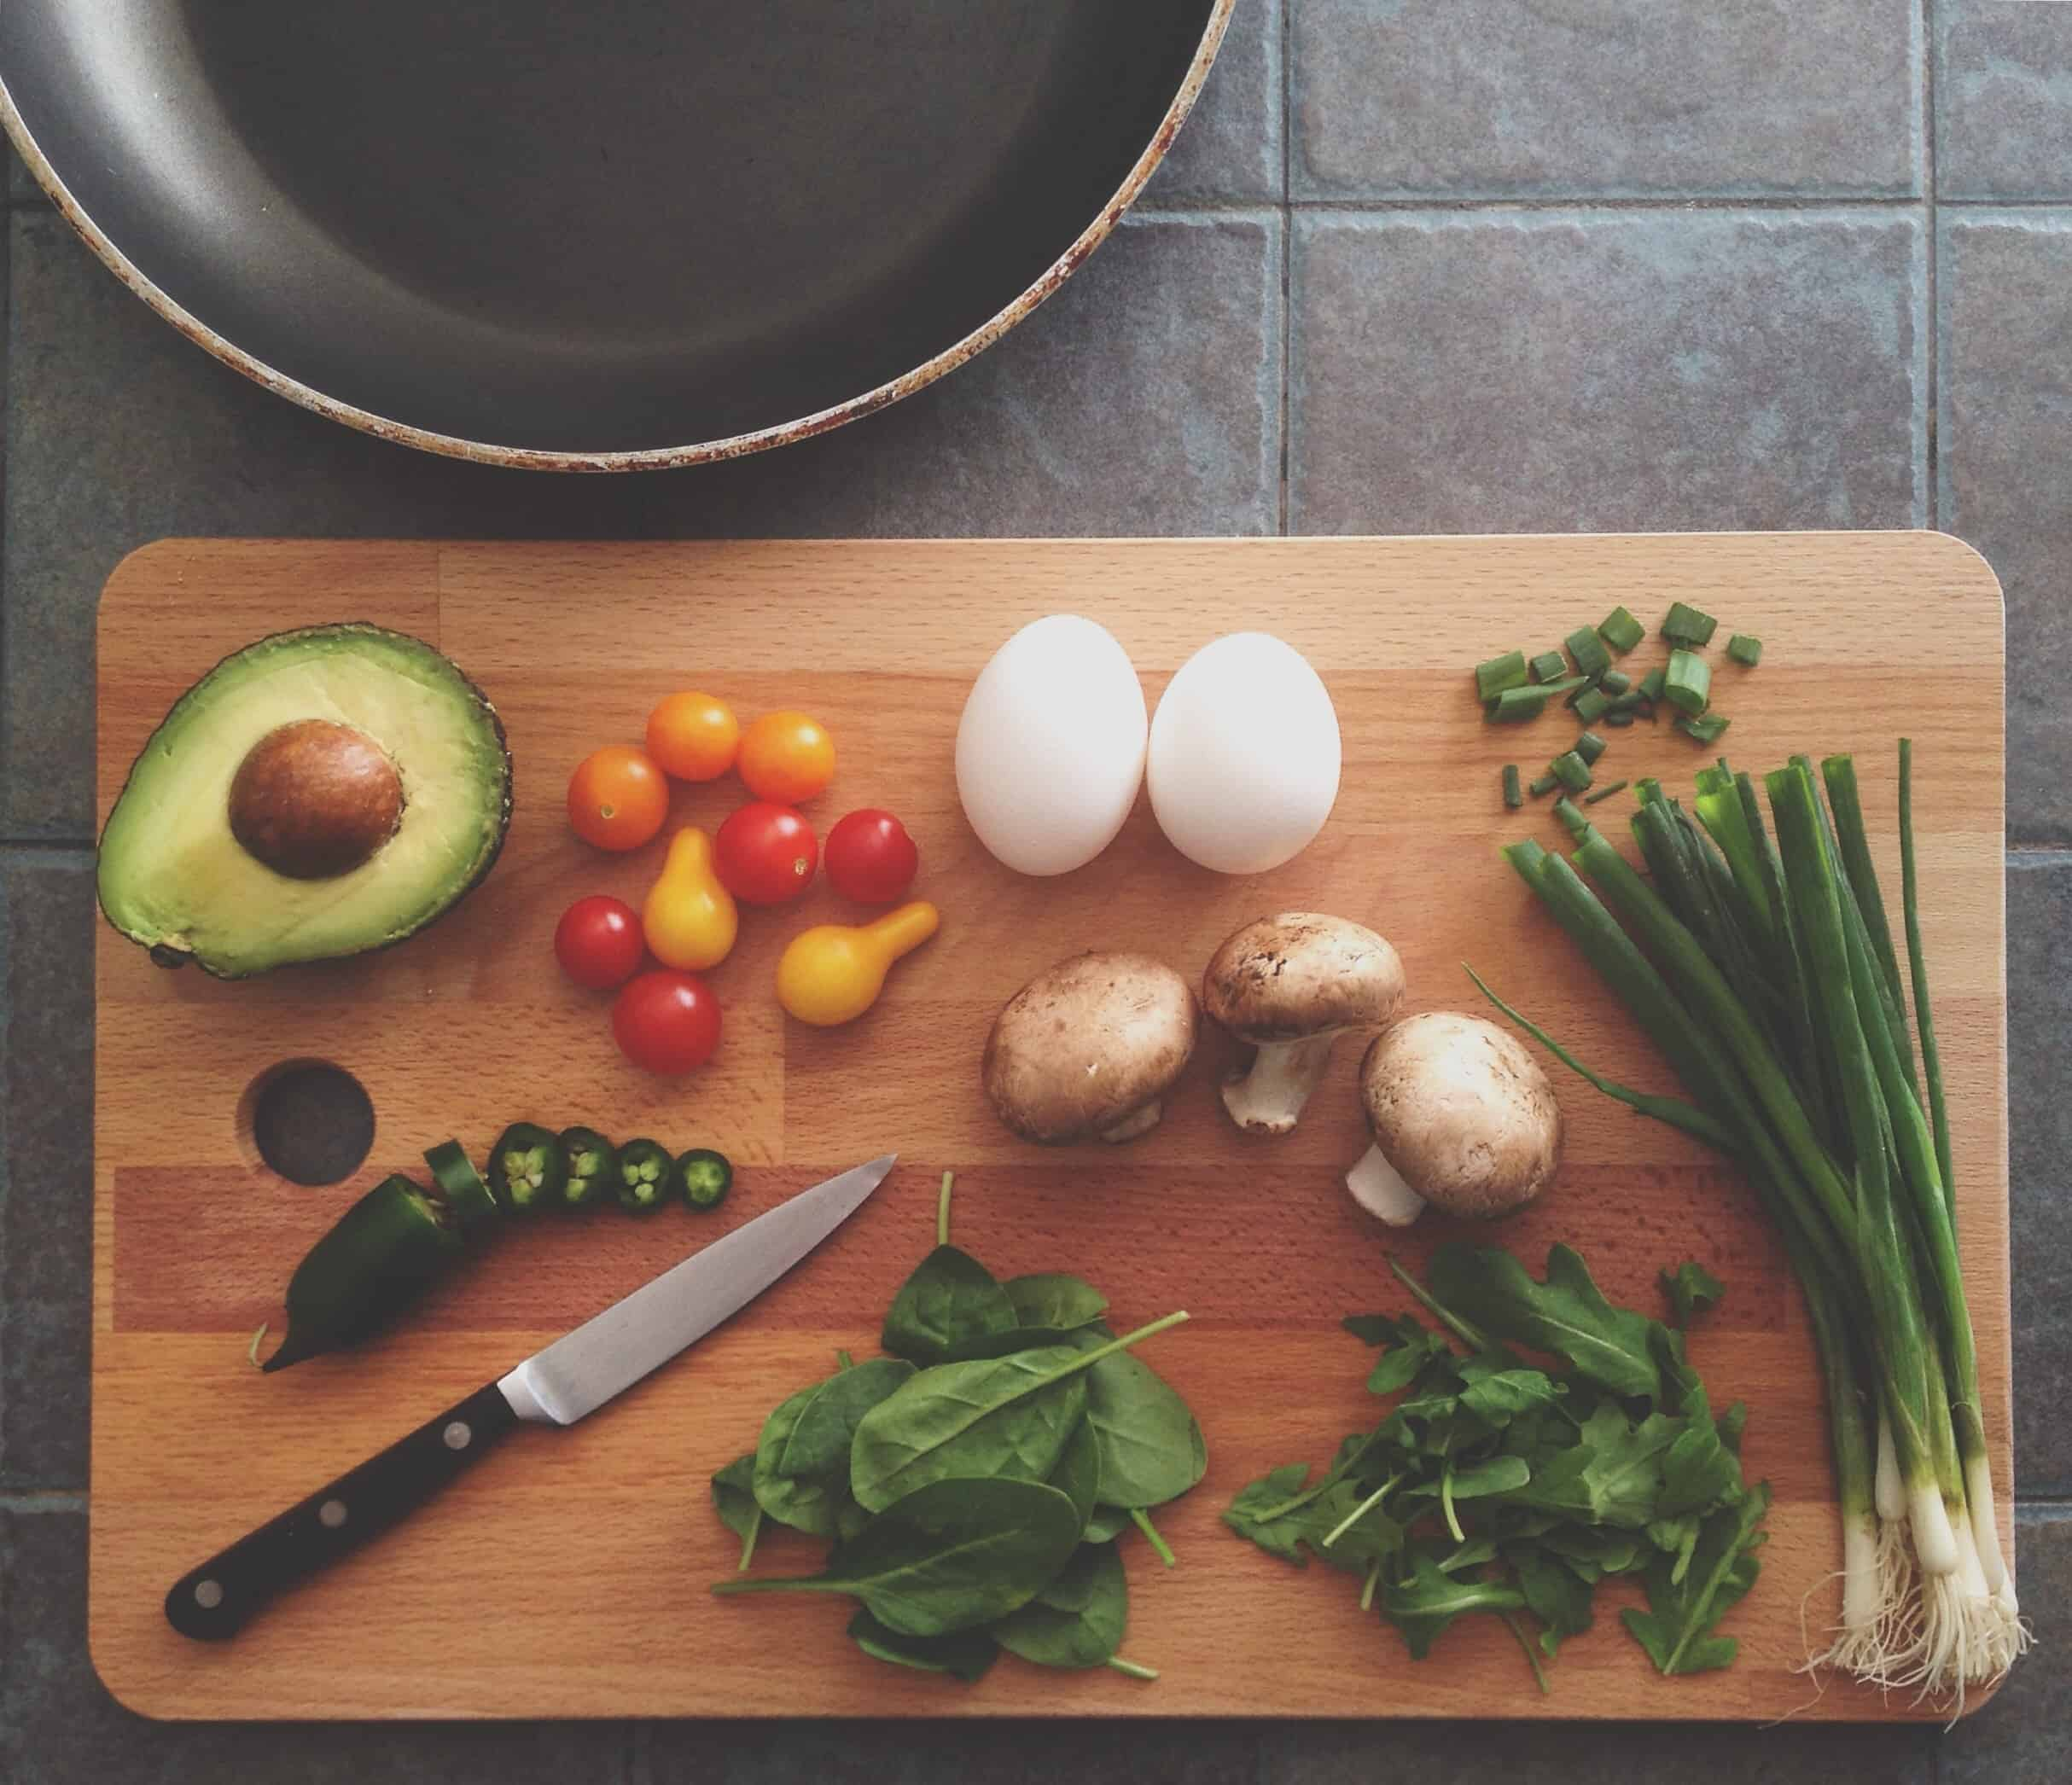 If you want to reach your goals of losing weight or eating healtheir? Meal planning is a must!